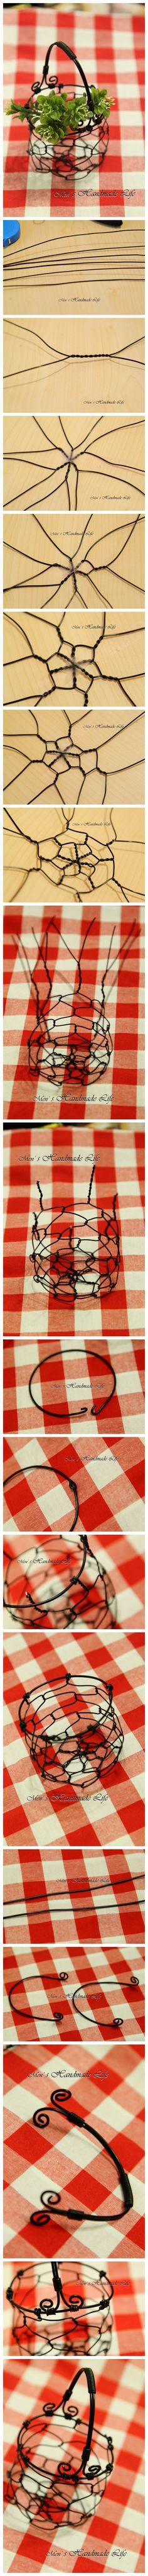 How to make a wire basket - not jewelry, but techniques are useful  #handmade #wire_wrapping